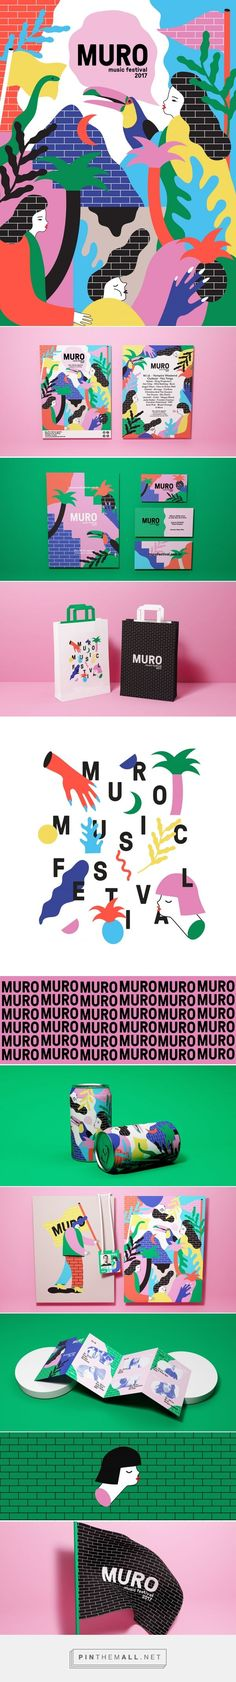 Muro Music Festival Branding by Giovani Flores | Fivestar Branding Agency – Design and Branding Agency & Curated Inspiration Gallery | https://lomejordelaweb.es/